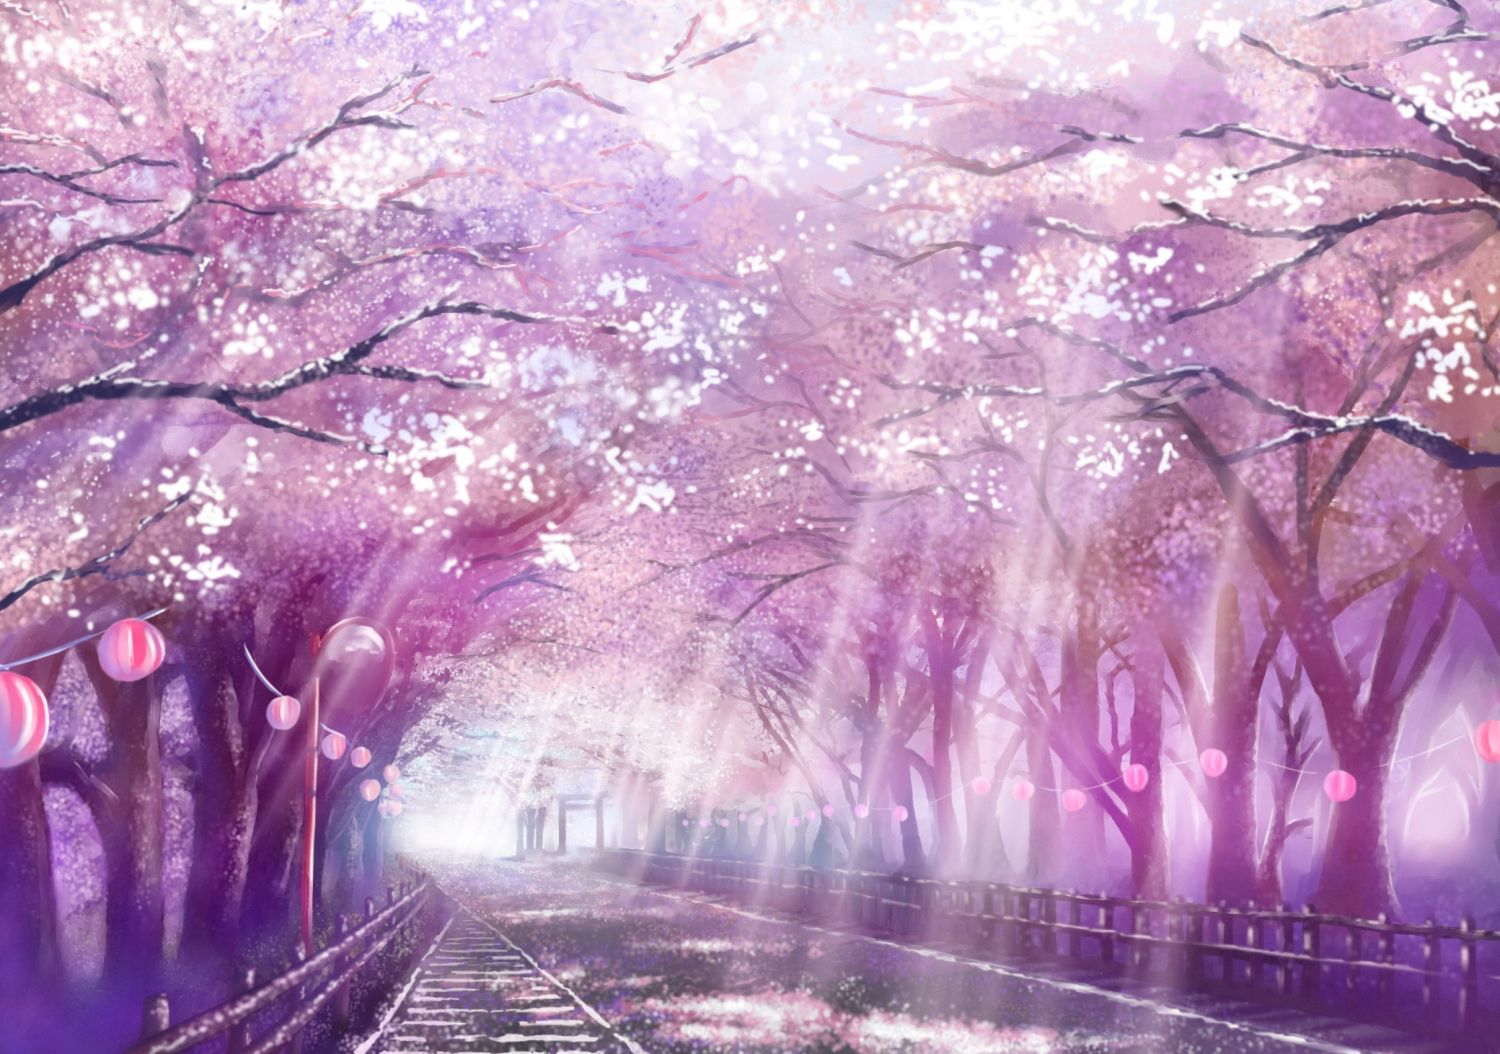 Cherry Blossom Tree Anime Wallpapers Top Free Cherry Blossom Tree Anime Backgrounds Wallpaperaccess